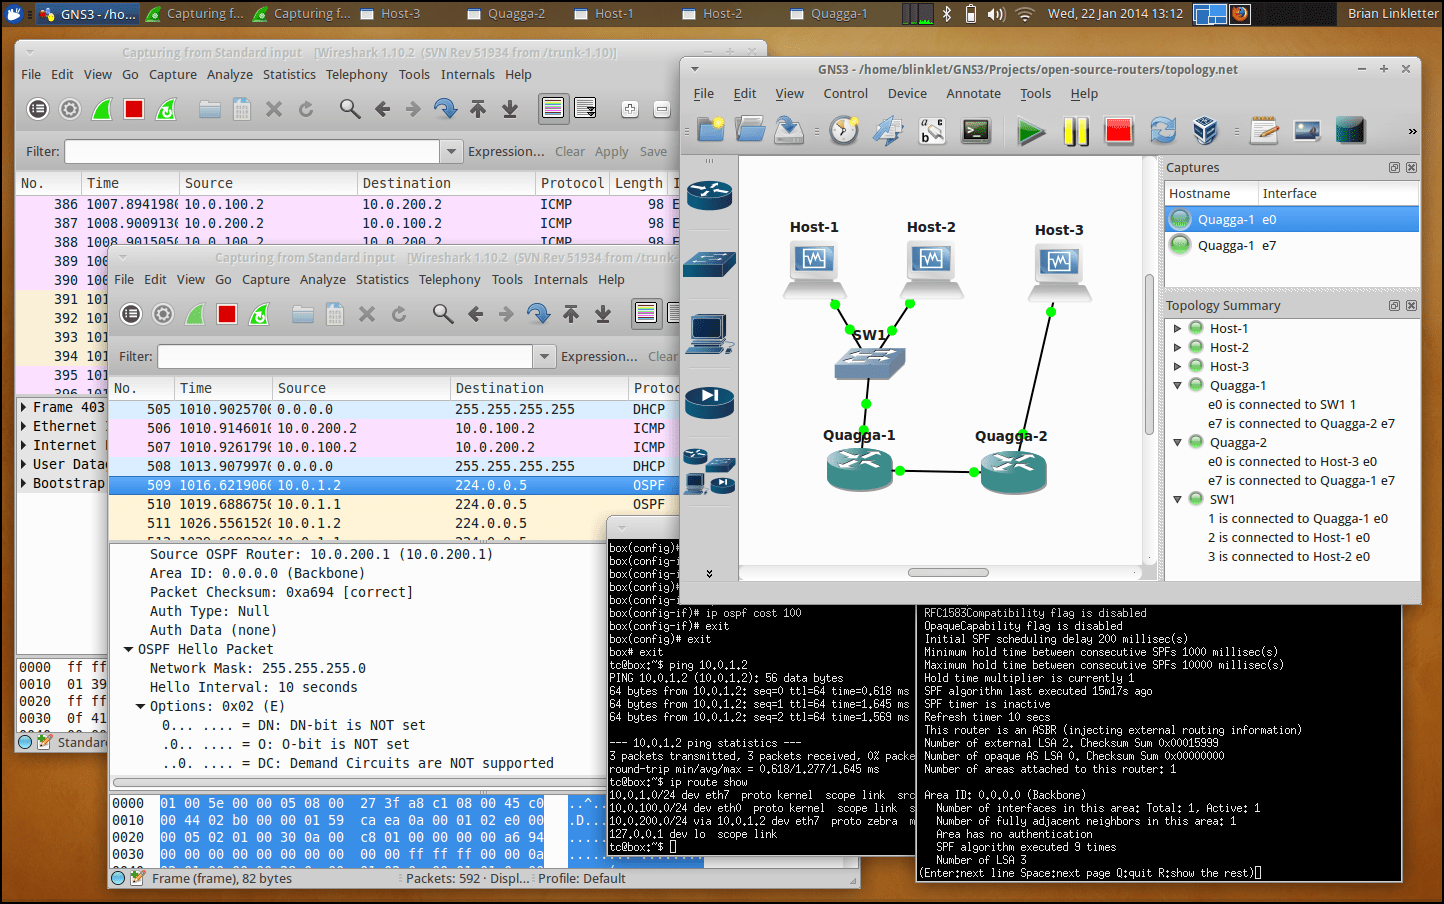 Using open-source routers in GNS3 | Open-Source Routing and